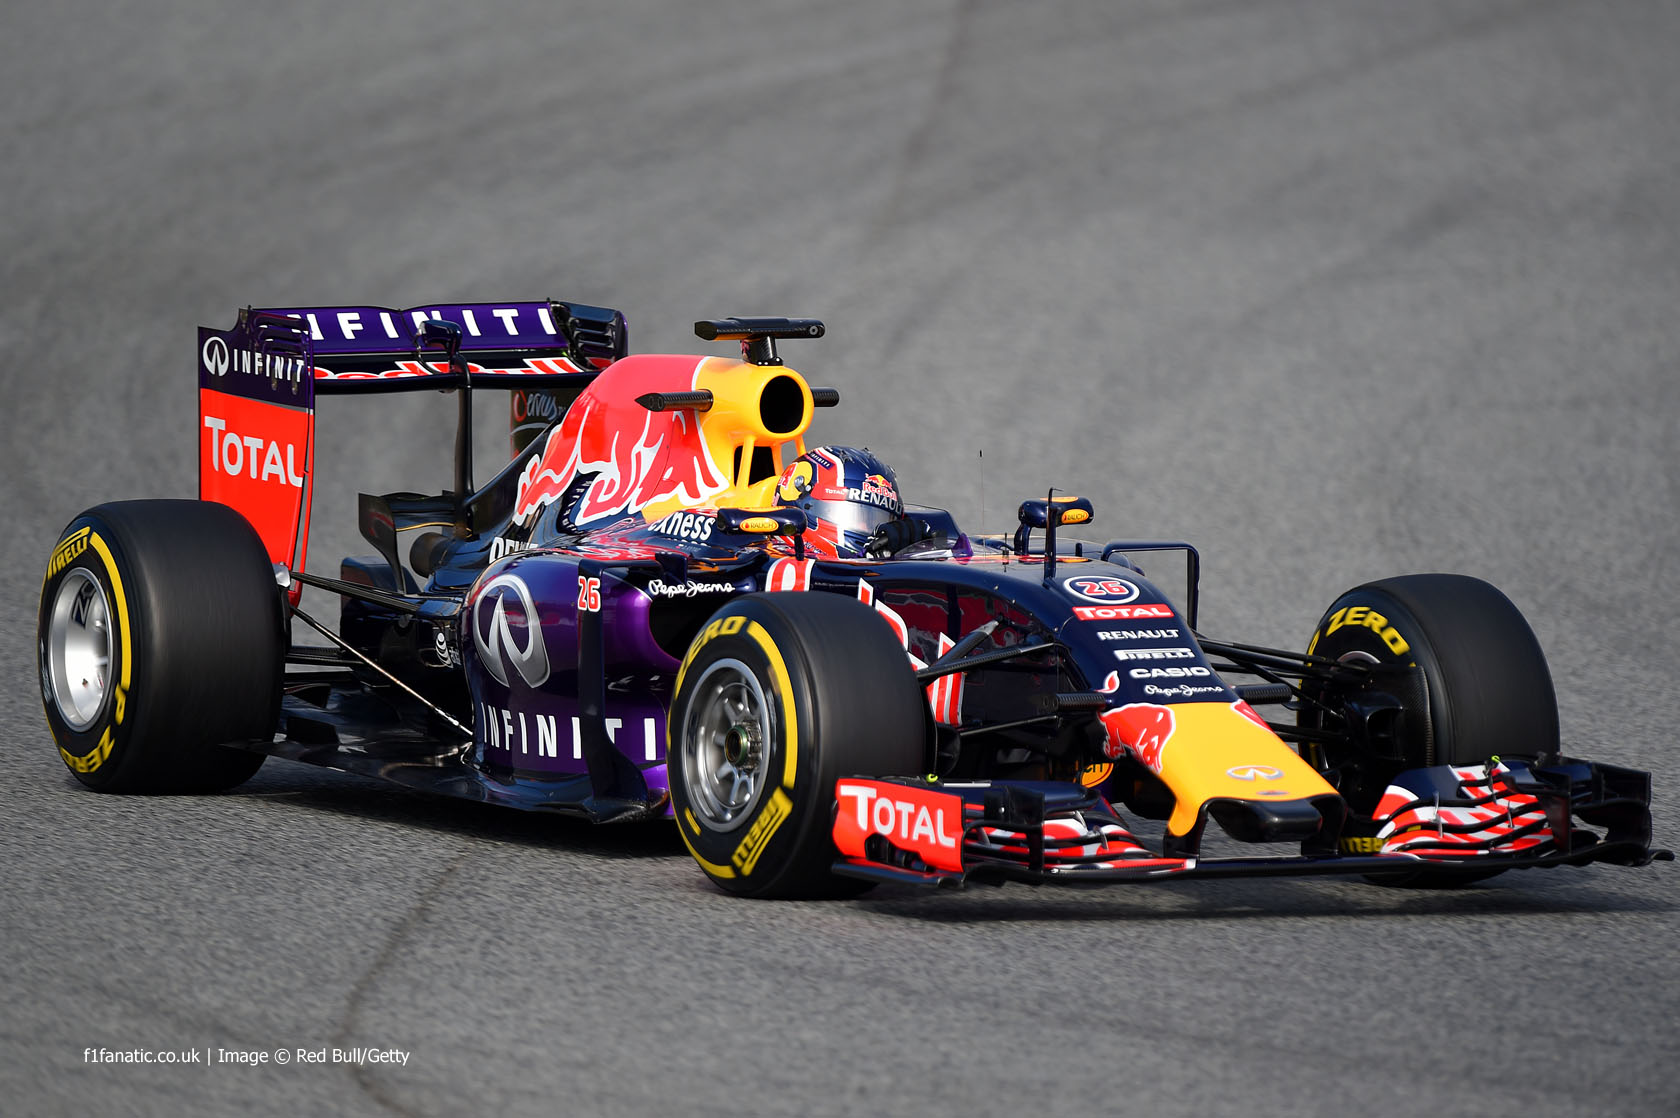 2015 f1 rb11 autoblog - photo #22